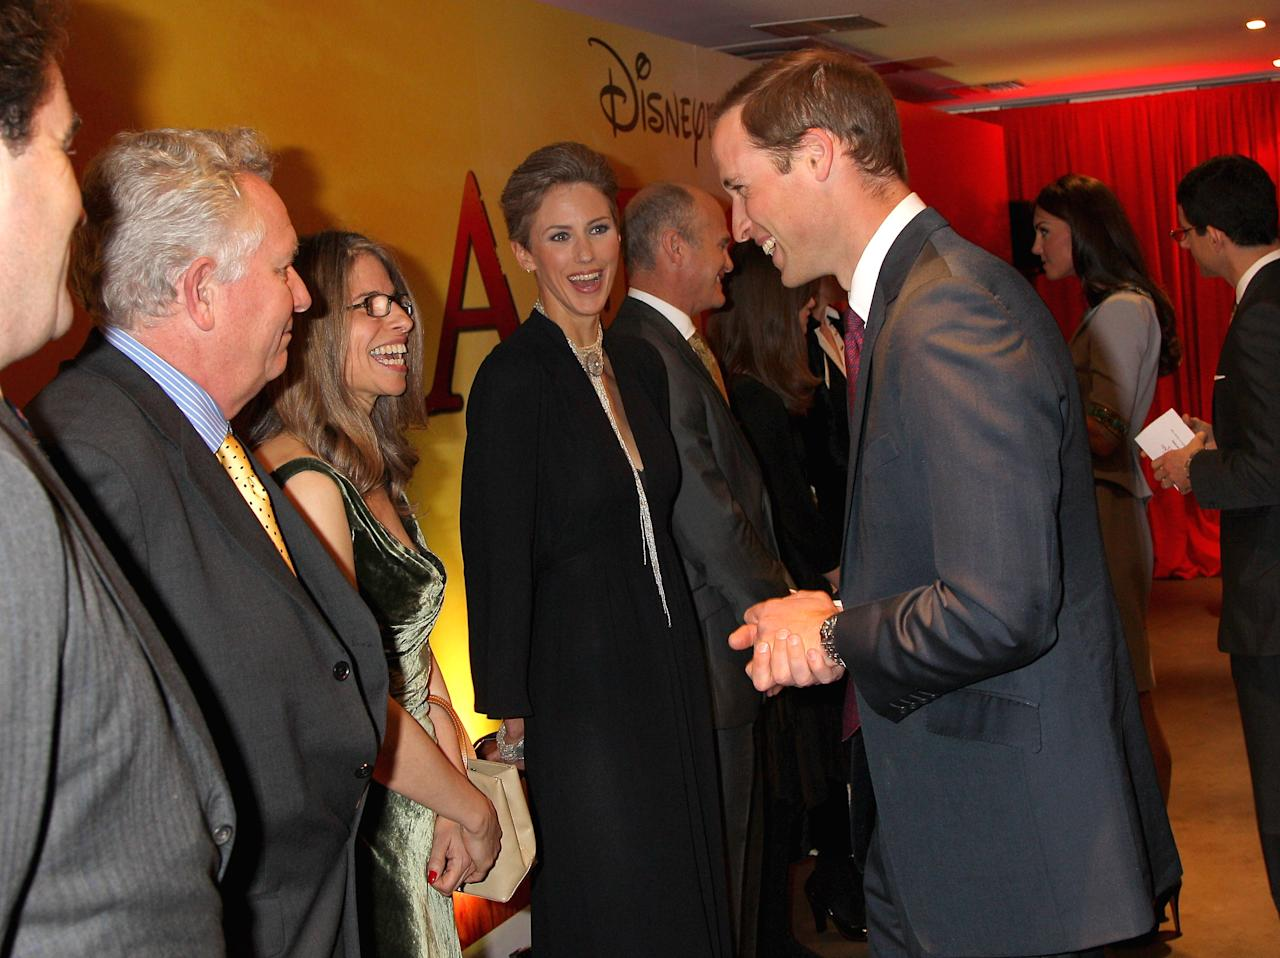 LONDON, ENGLAND - APRIL 25:  Prince William, Duke of Cambridge chats to Alix Tidmarsh at the UK Premiere of 'African Cats' in aid of Tusk at BFI Southbank on April 25, 2012 in London, England.  (Photo by Chris Jackson - WPA Pool /Getty Images)